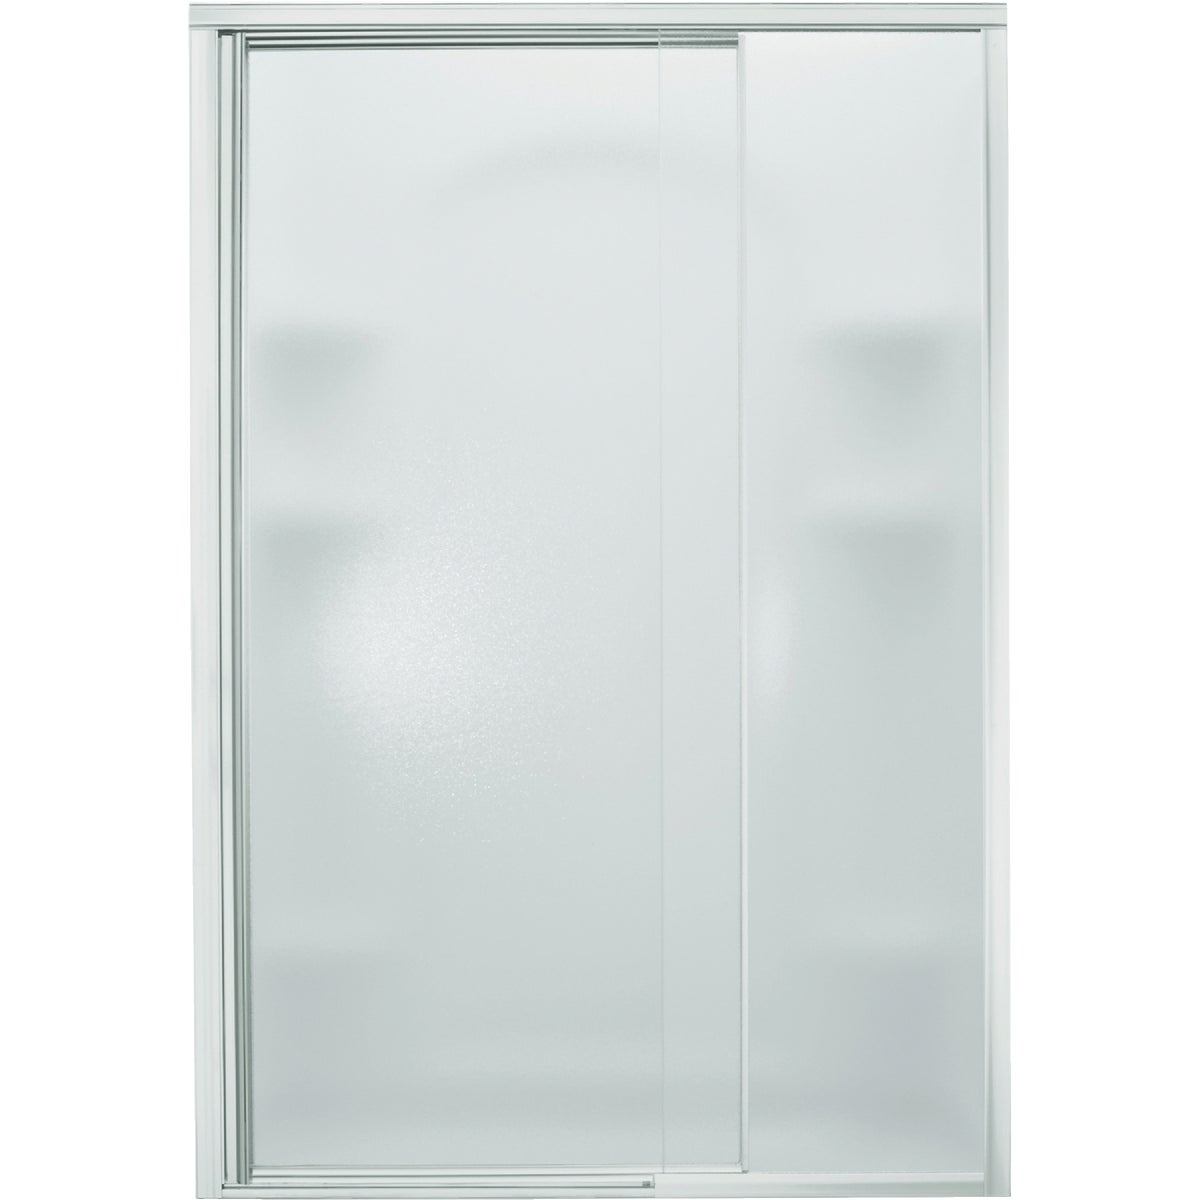 "42""-48"" VISTA SHWR DOOR"